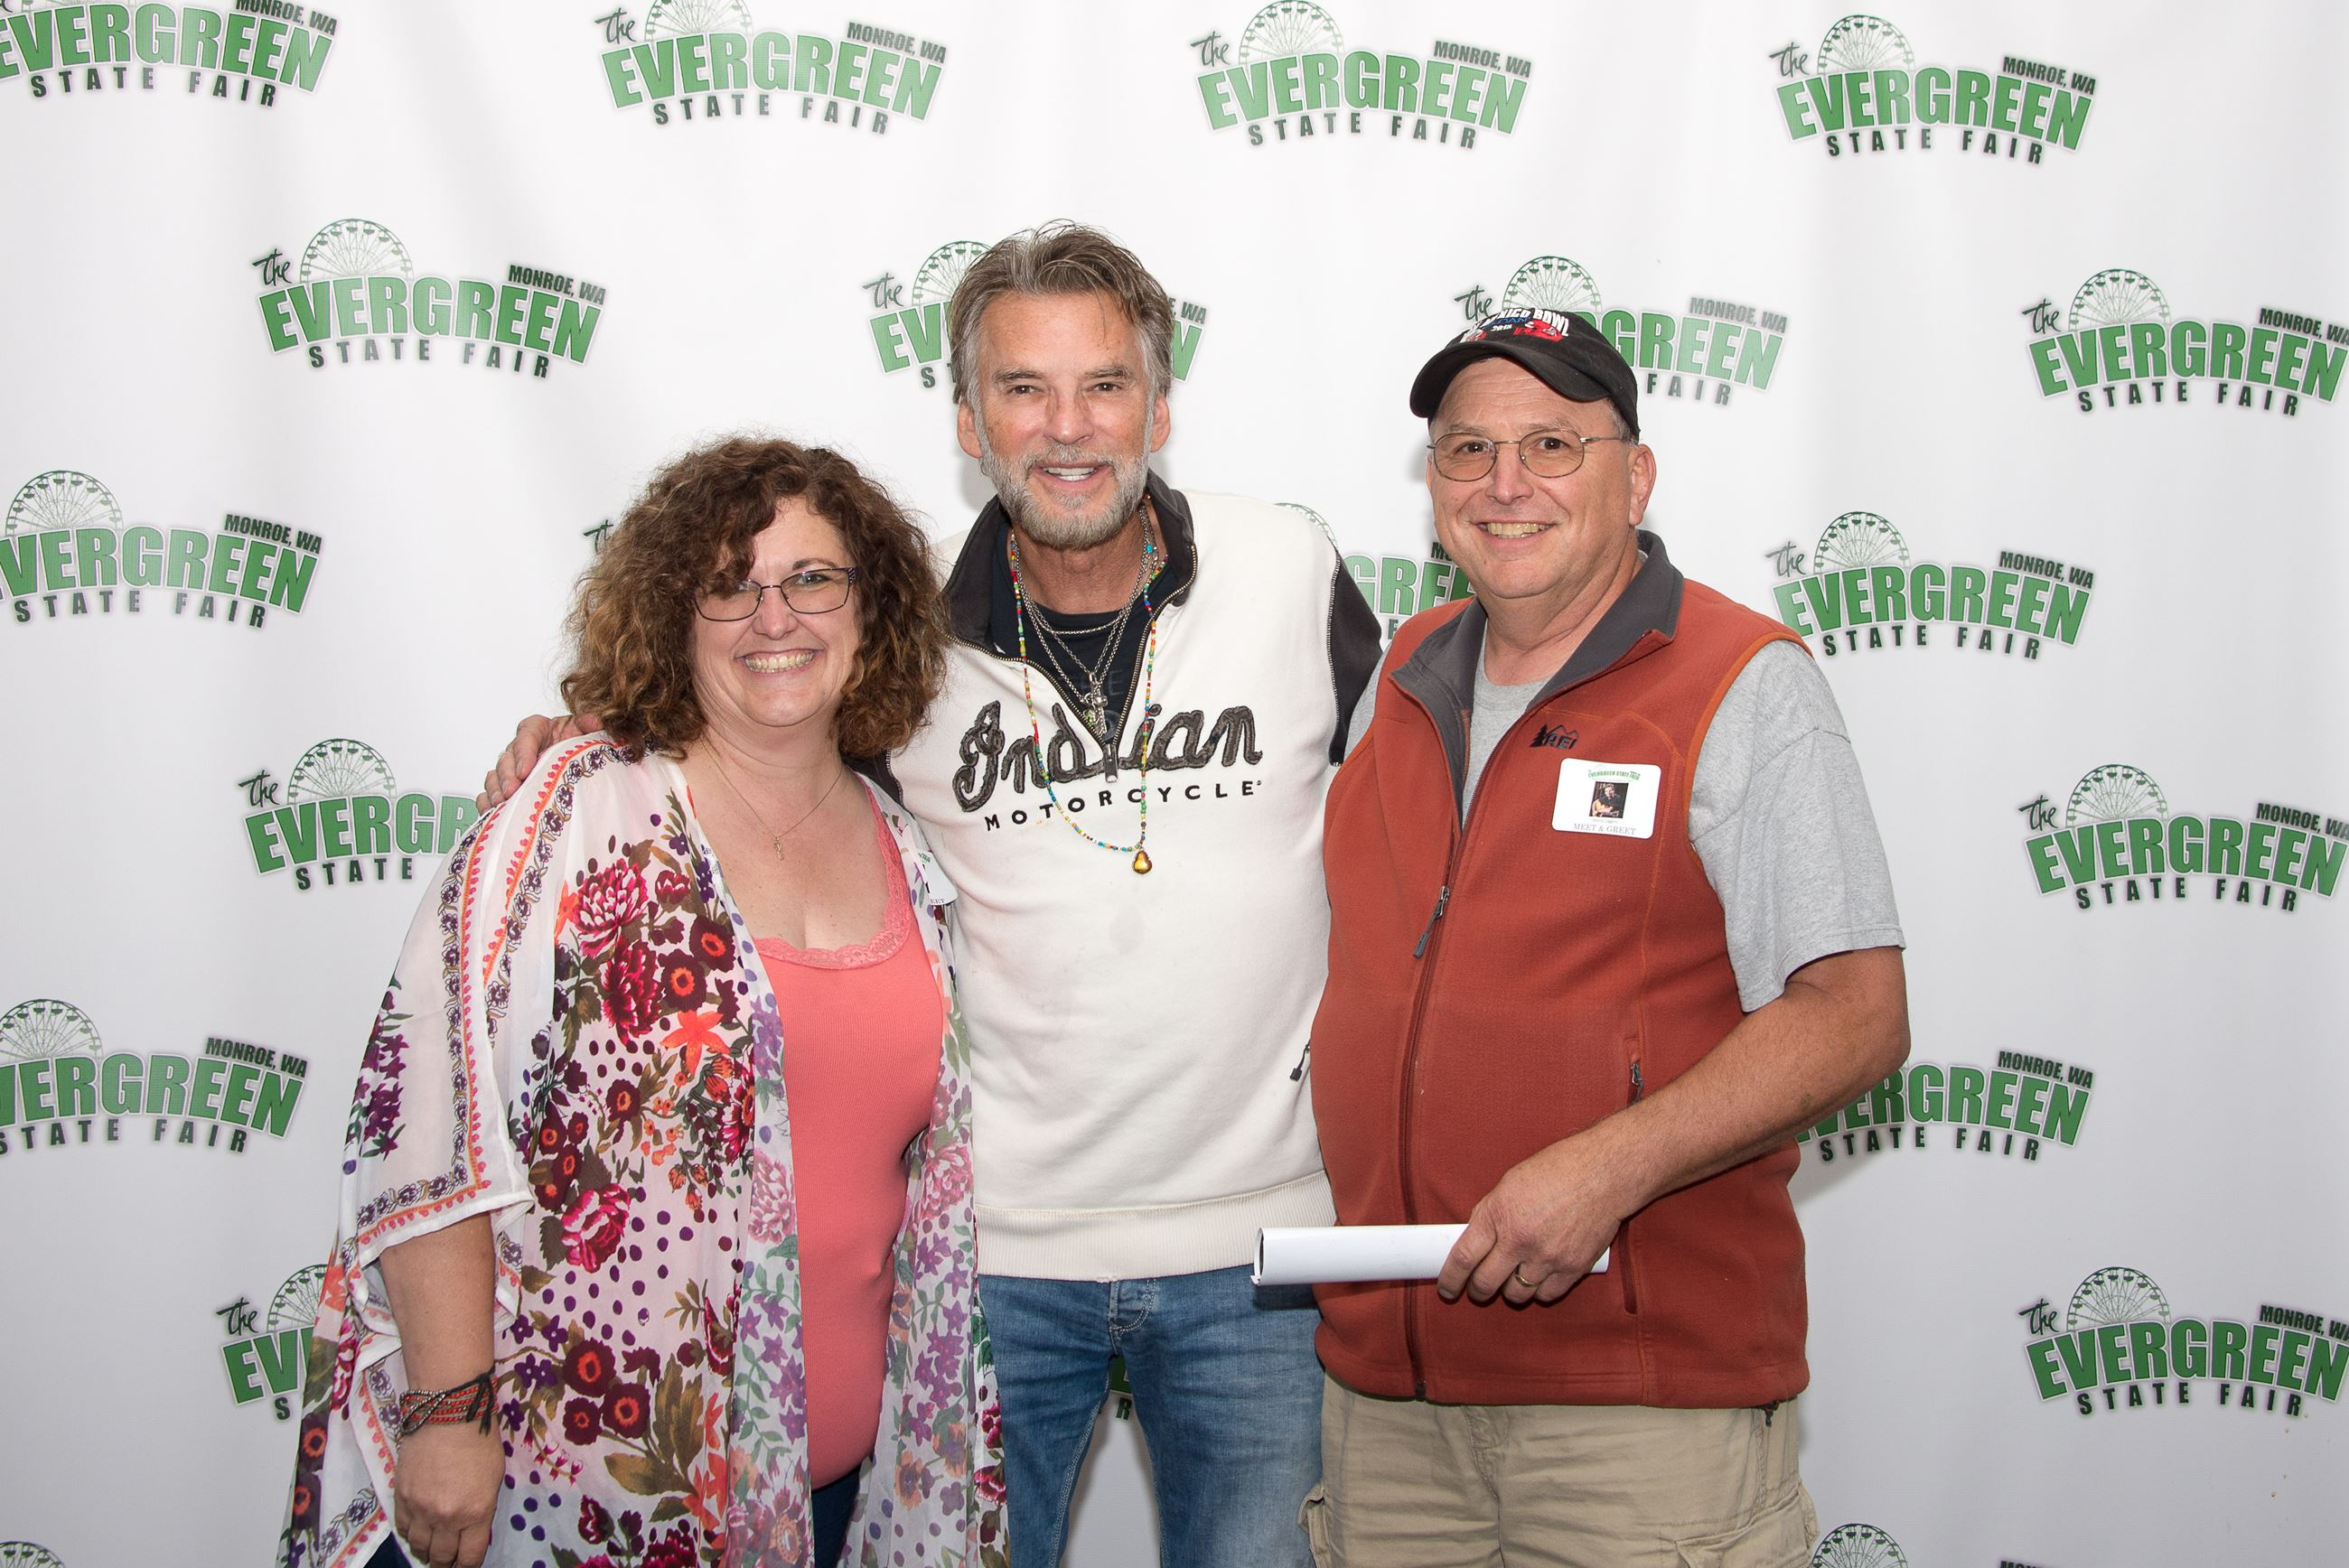 Evergreen state fairgrounds wa official website thumbs up kenny loggins mg c 8 of 34 kristyandbryce Choice Image